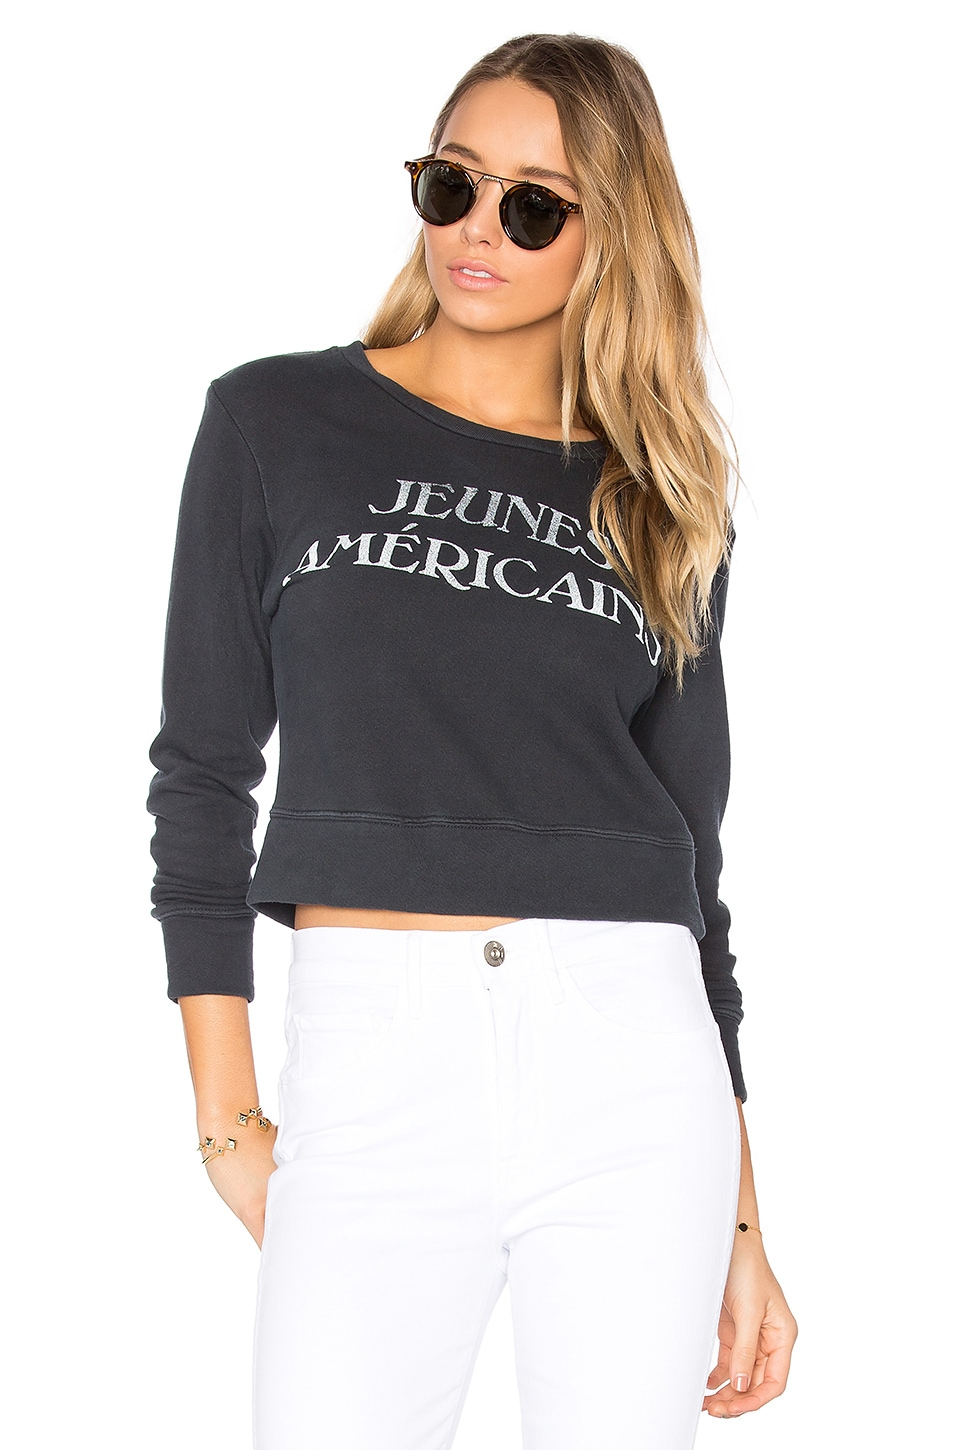 The Matchbox Sweatshirt by Mother